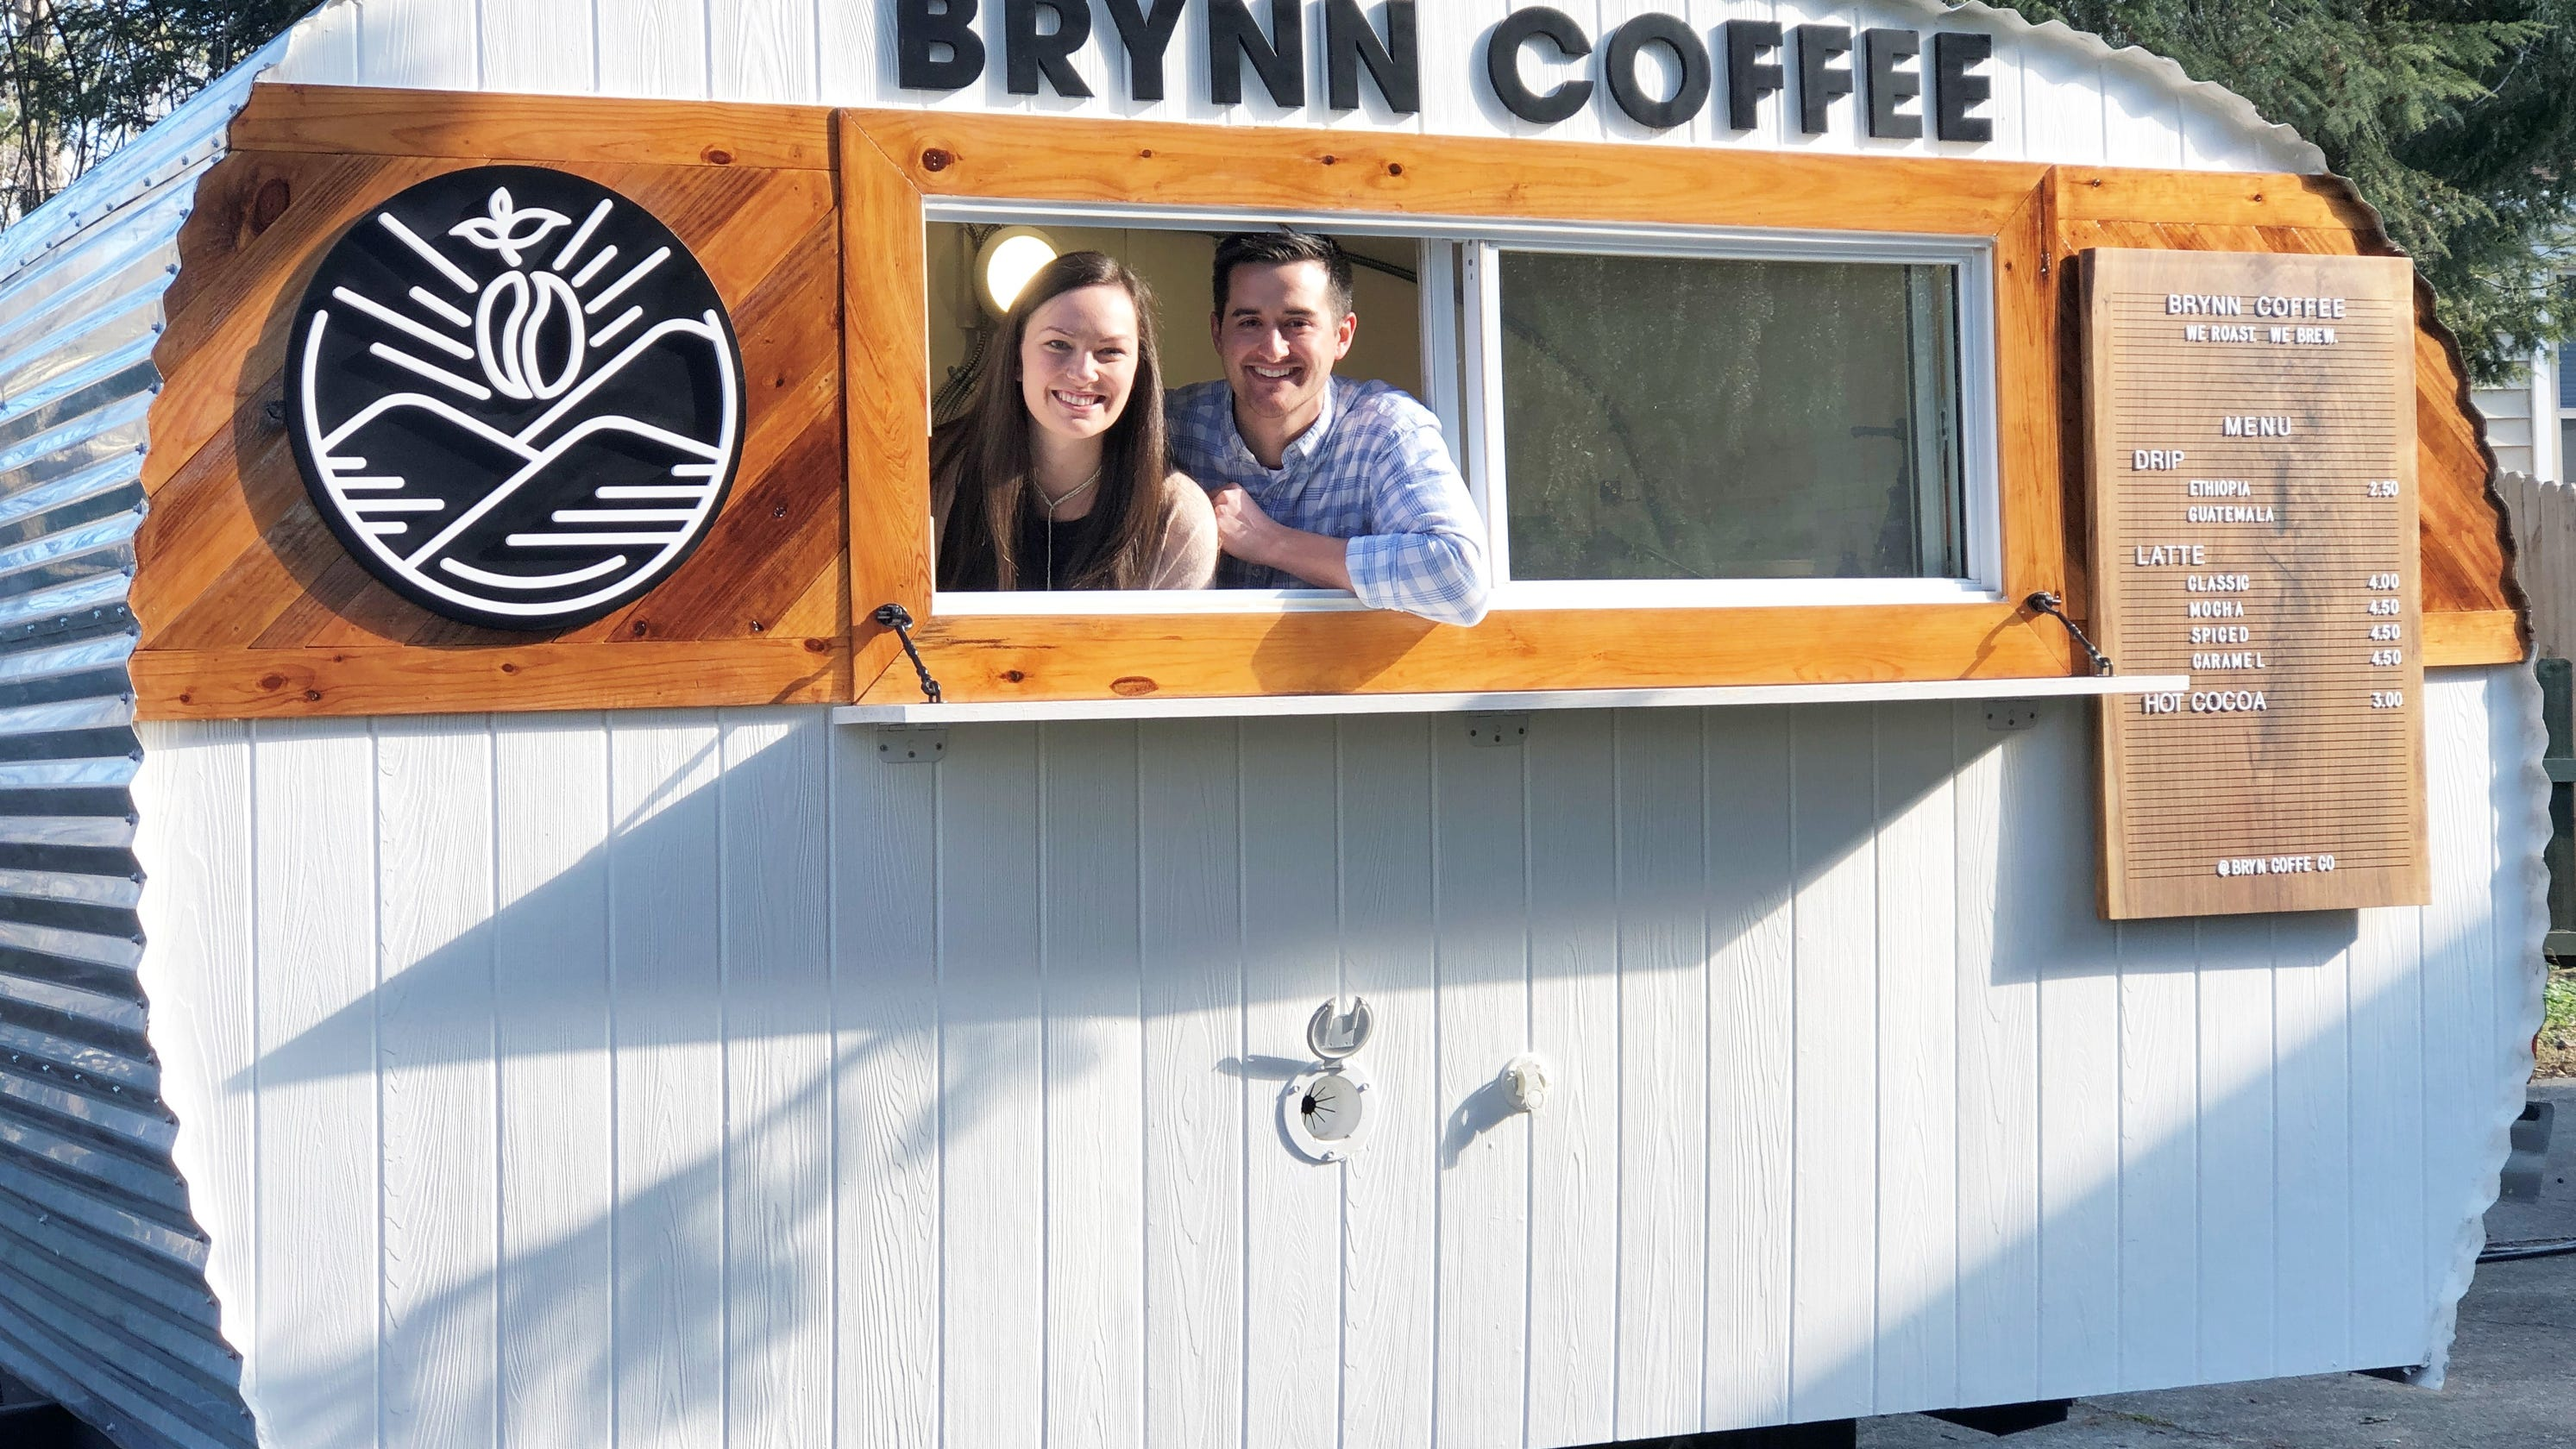 Freshly roasted Brynn Coffee from a 1970s Winnebago